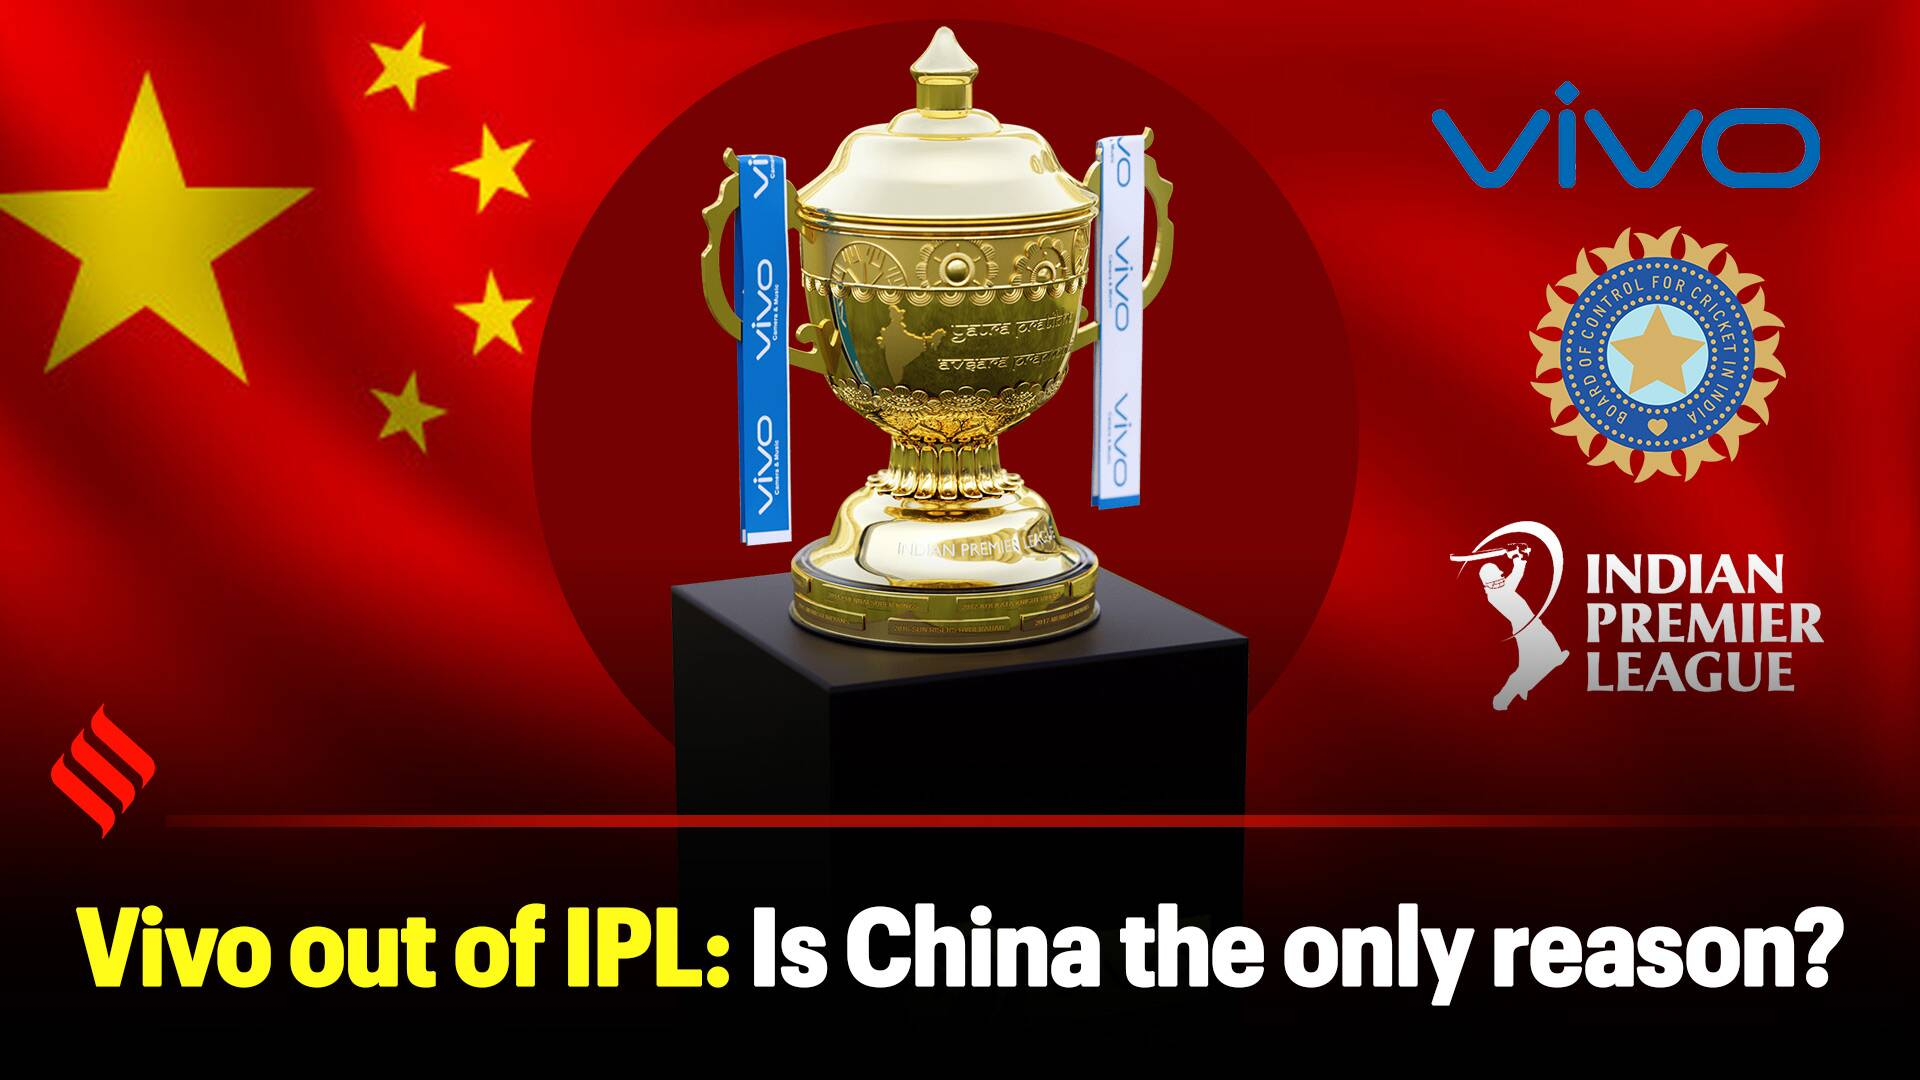 IPL-Vivo deal suspension: More than just anti-China sentiment